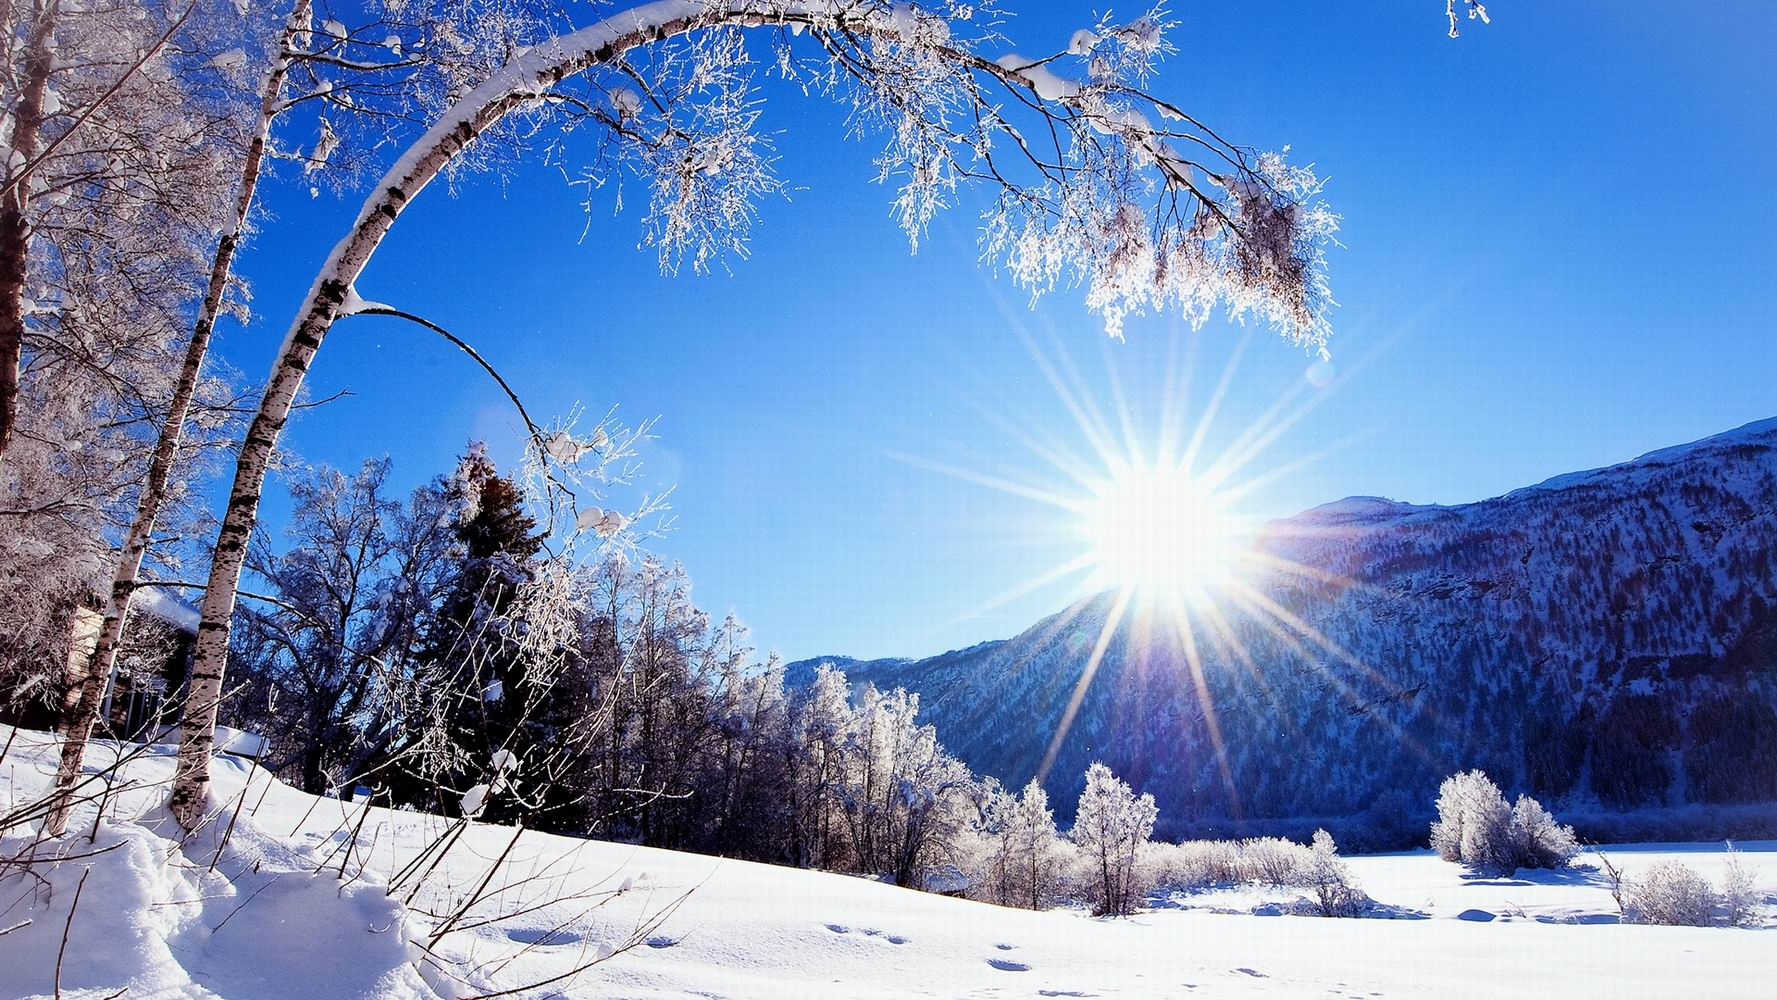 Winter-snow-mountains-and-trees-white-scenery-dazzling-sunshine_1920x1080.jpg